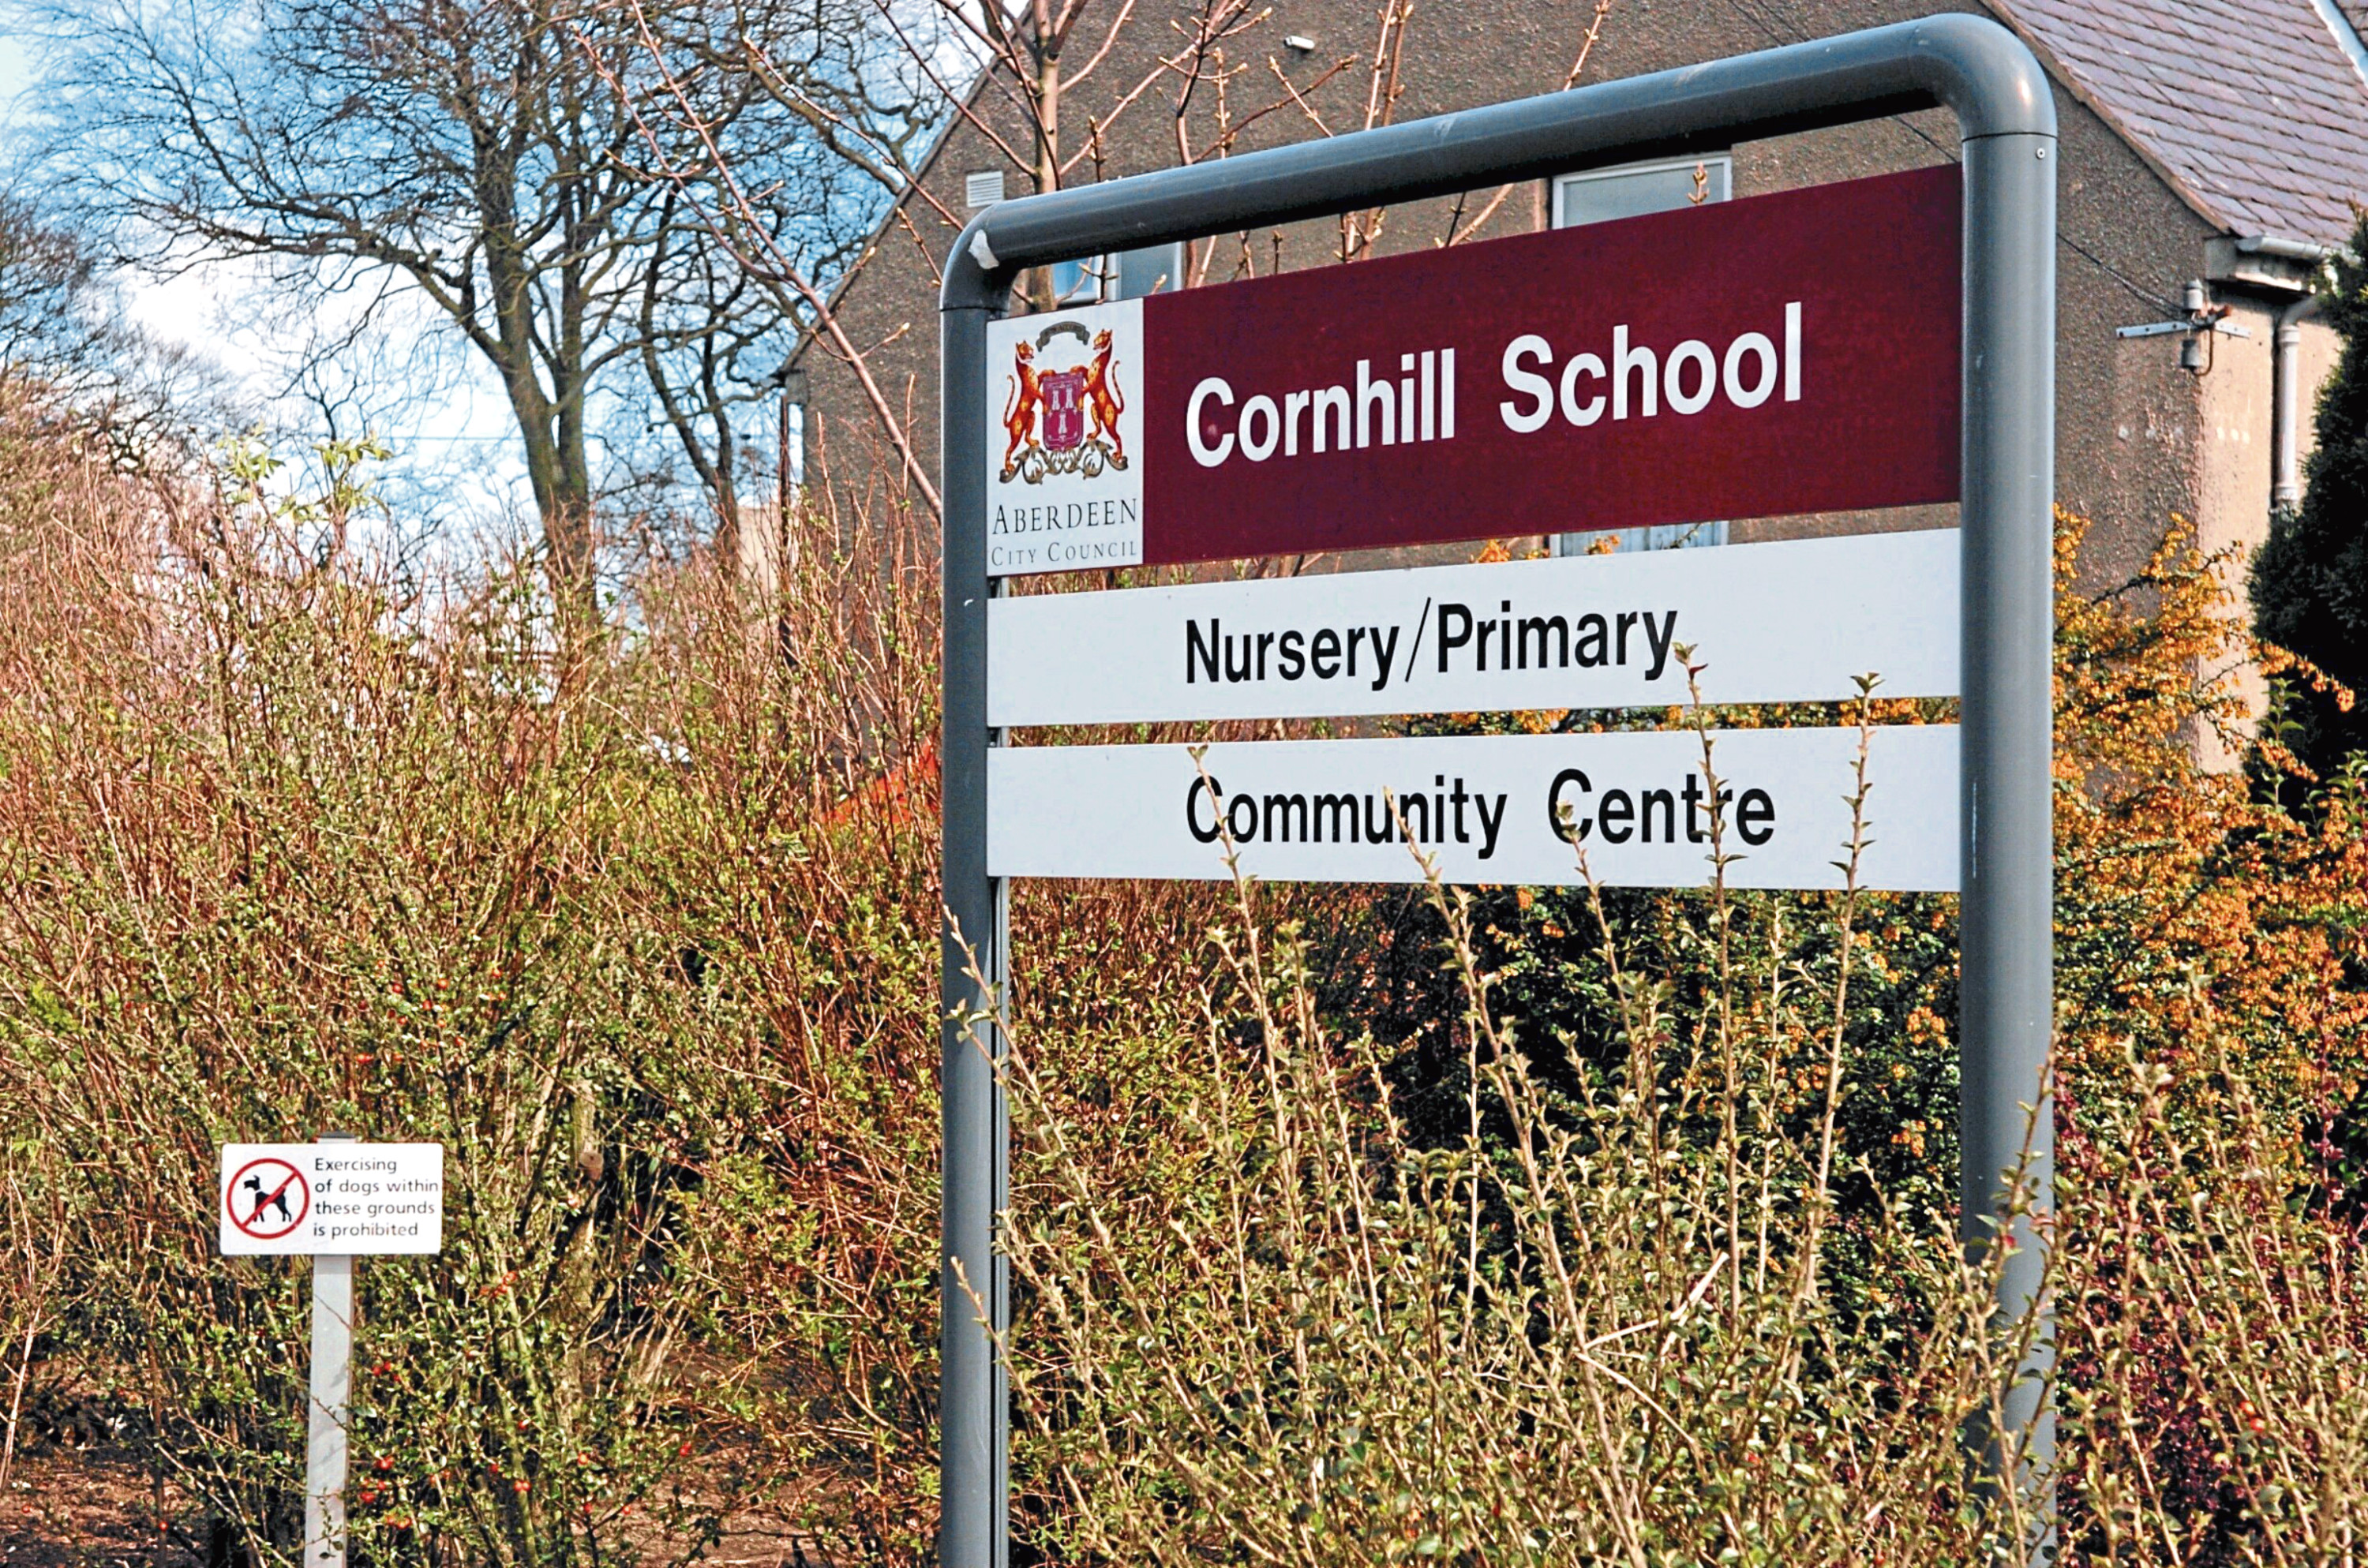 The after-school club as based at the community centre in Cornhill